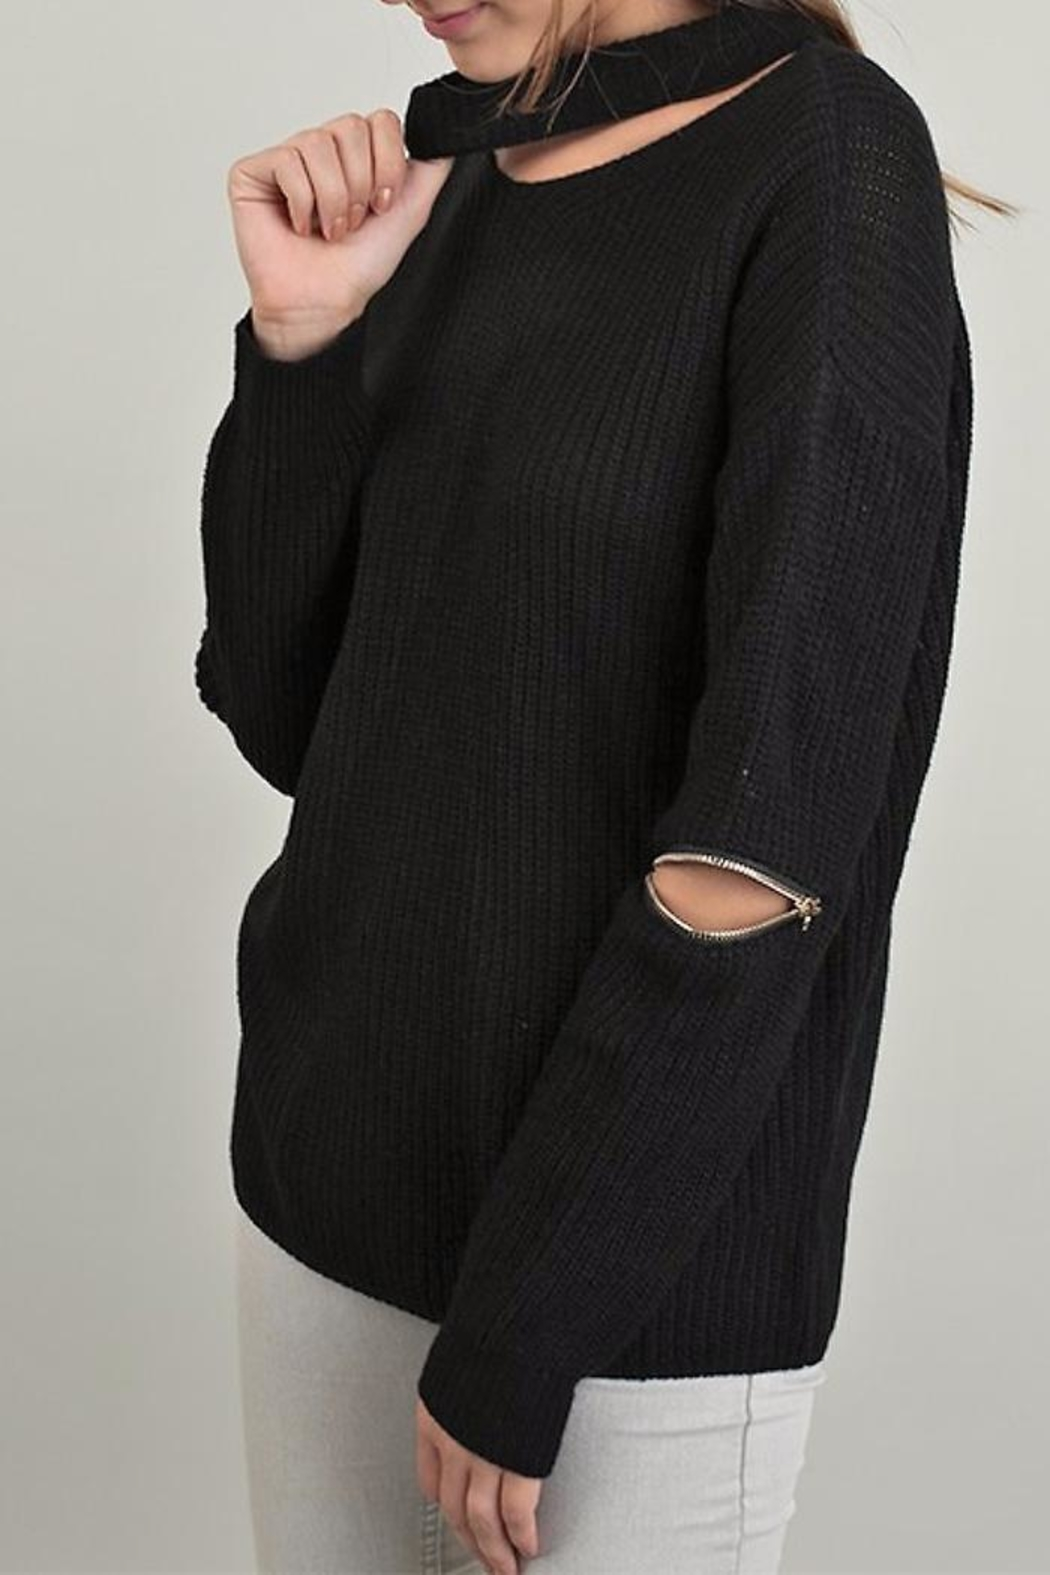 People Outfitter Knit Zipper Sweater - Main Image